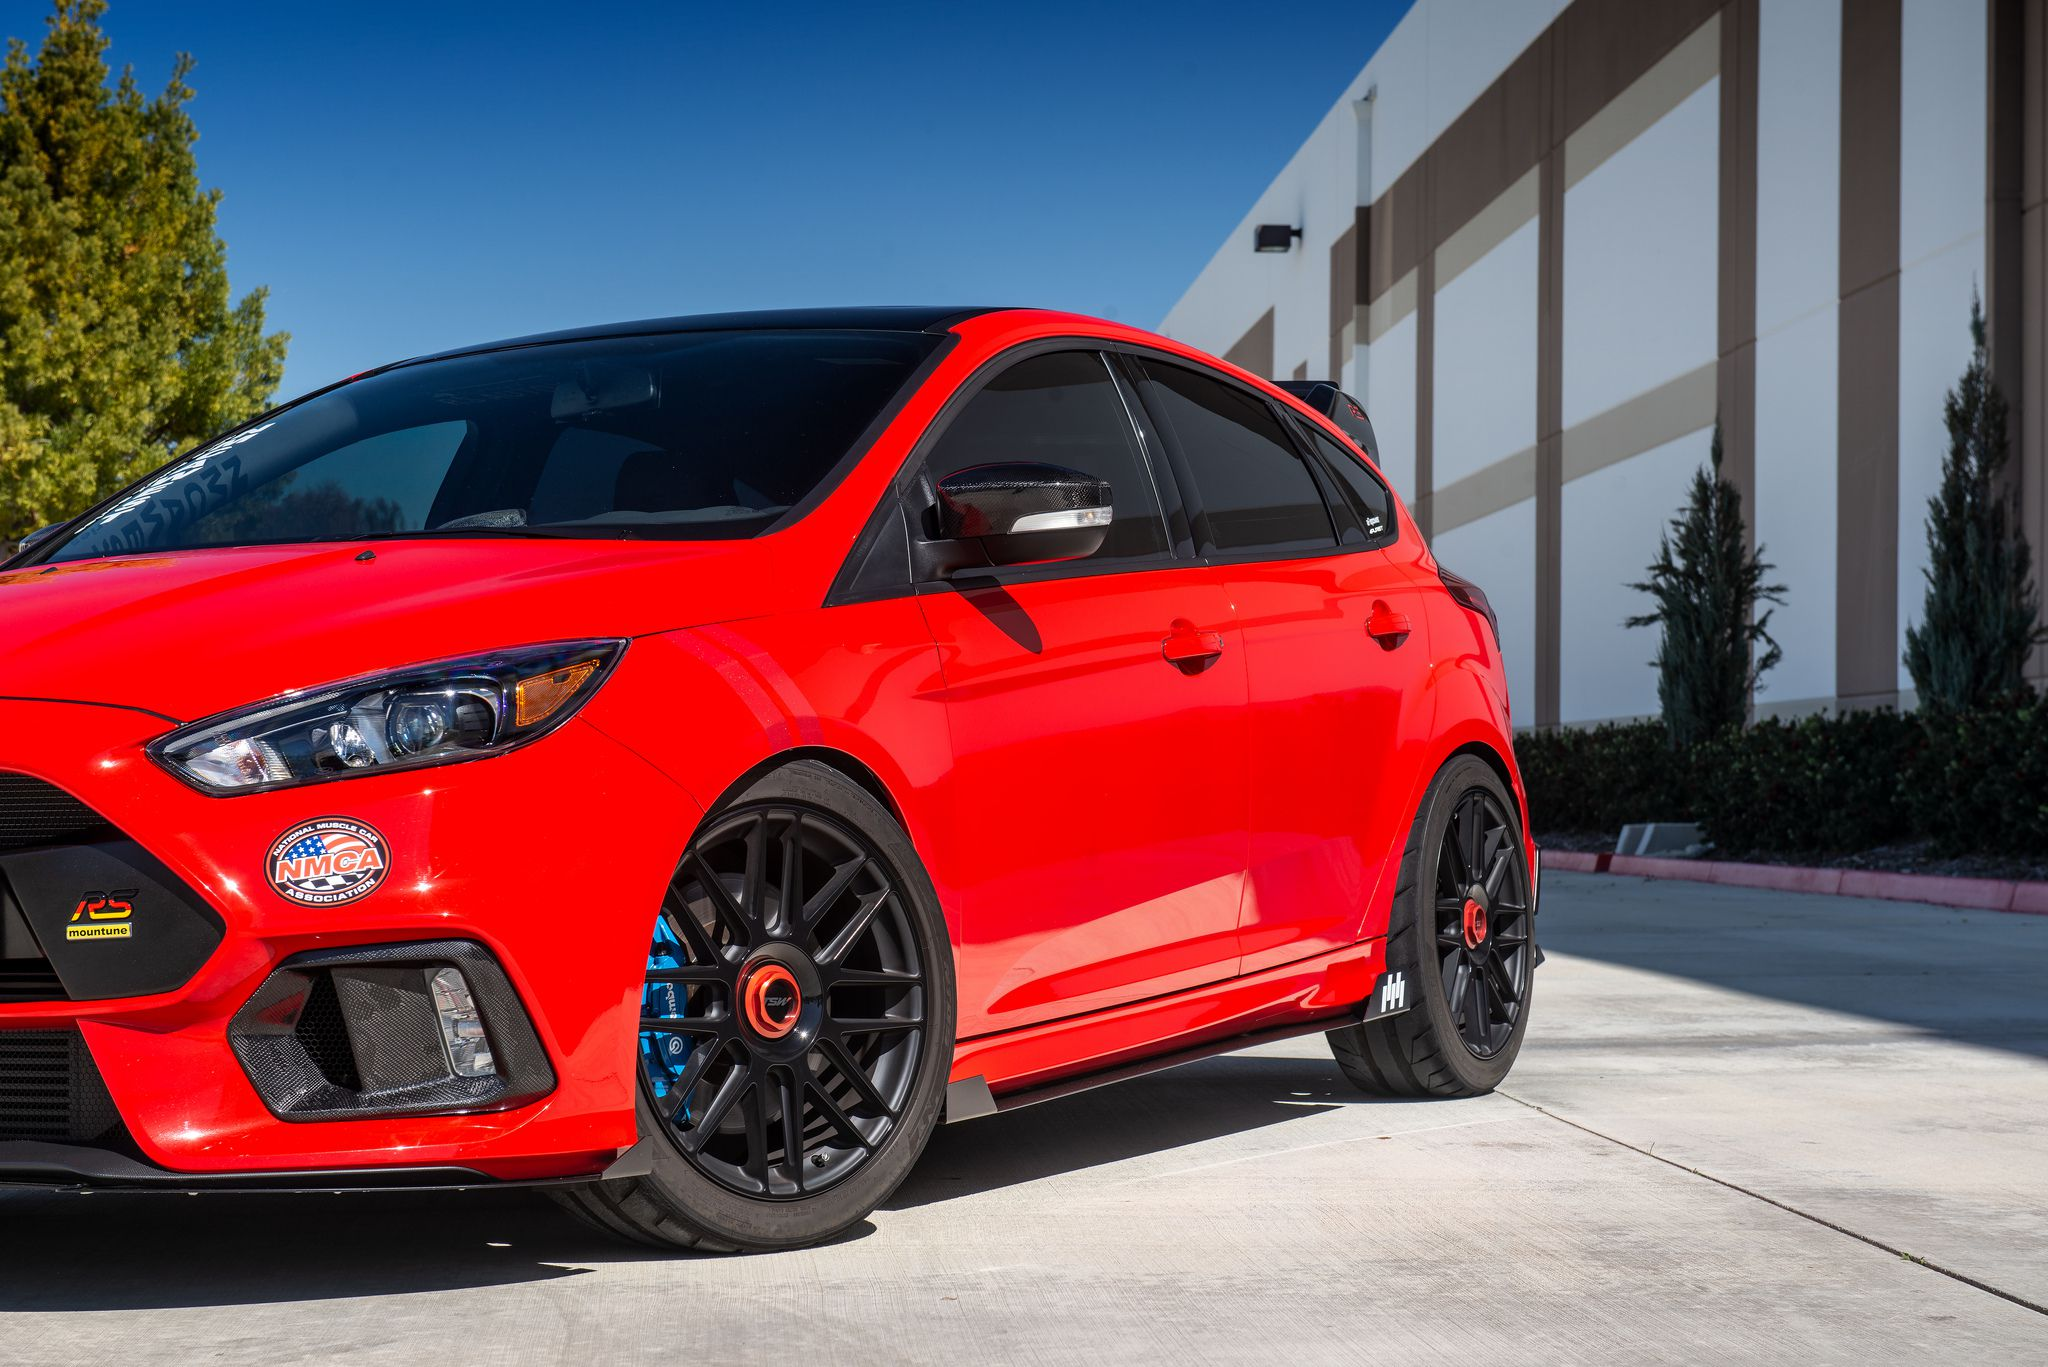 Ford Focus RS MK3 in red colour